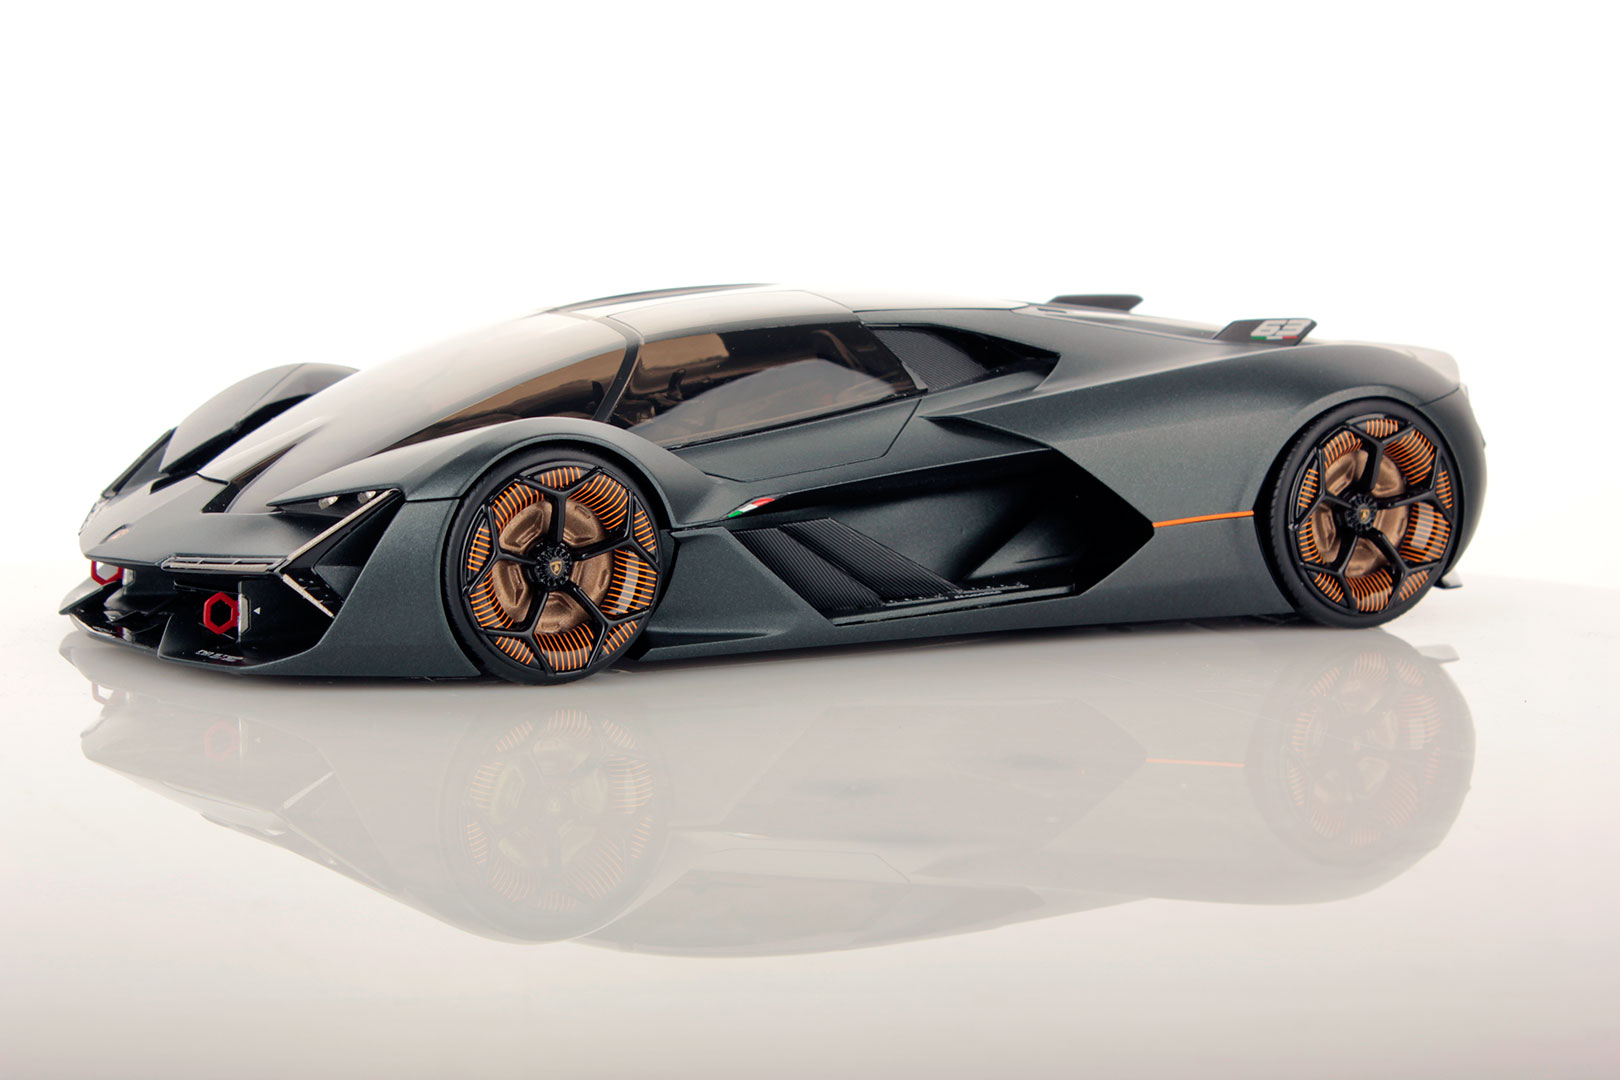 Lamborghini Terzo Millennio 1 18 Mr Collection Models